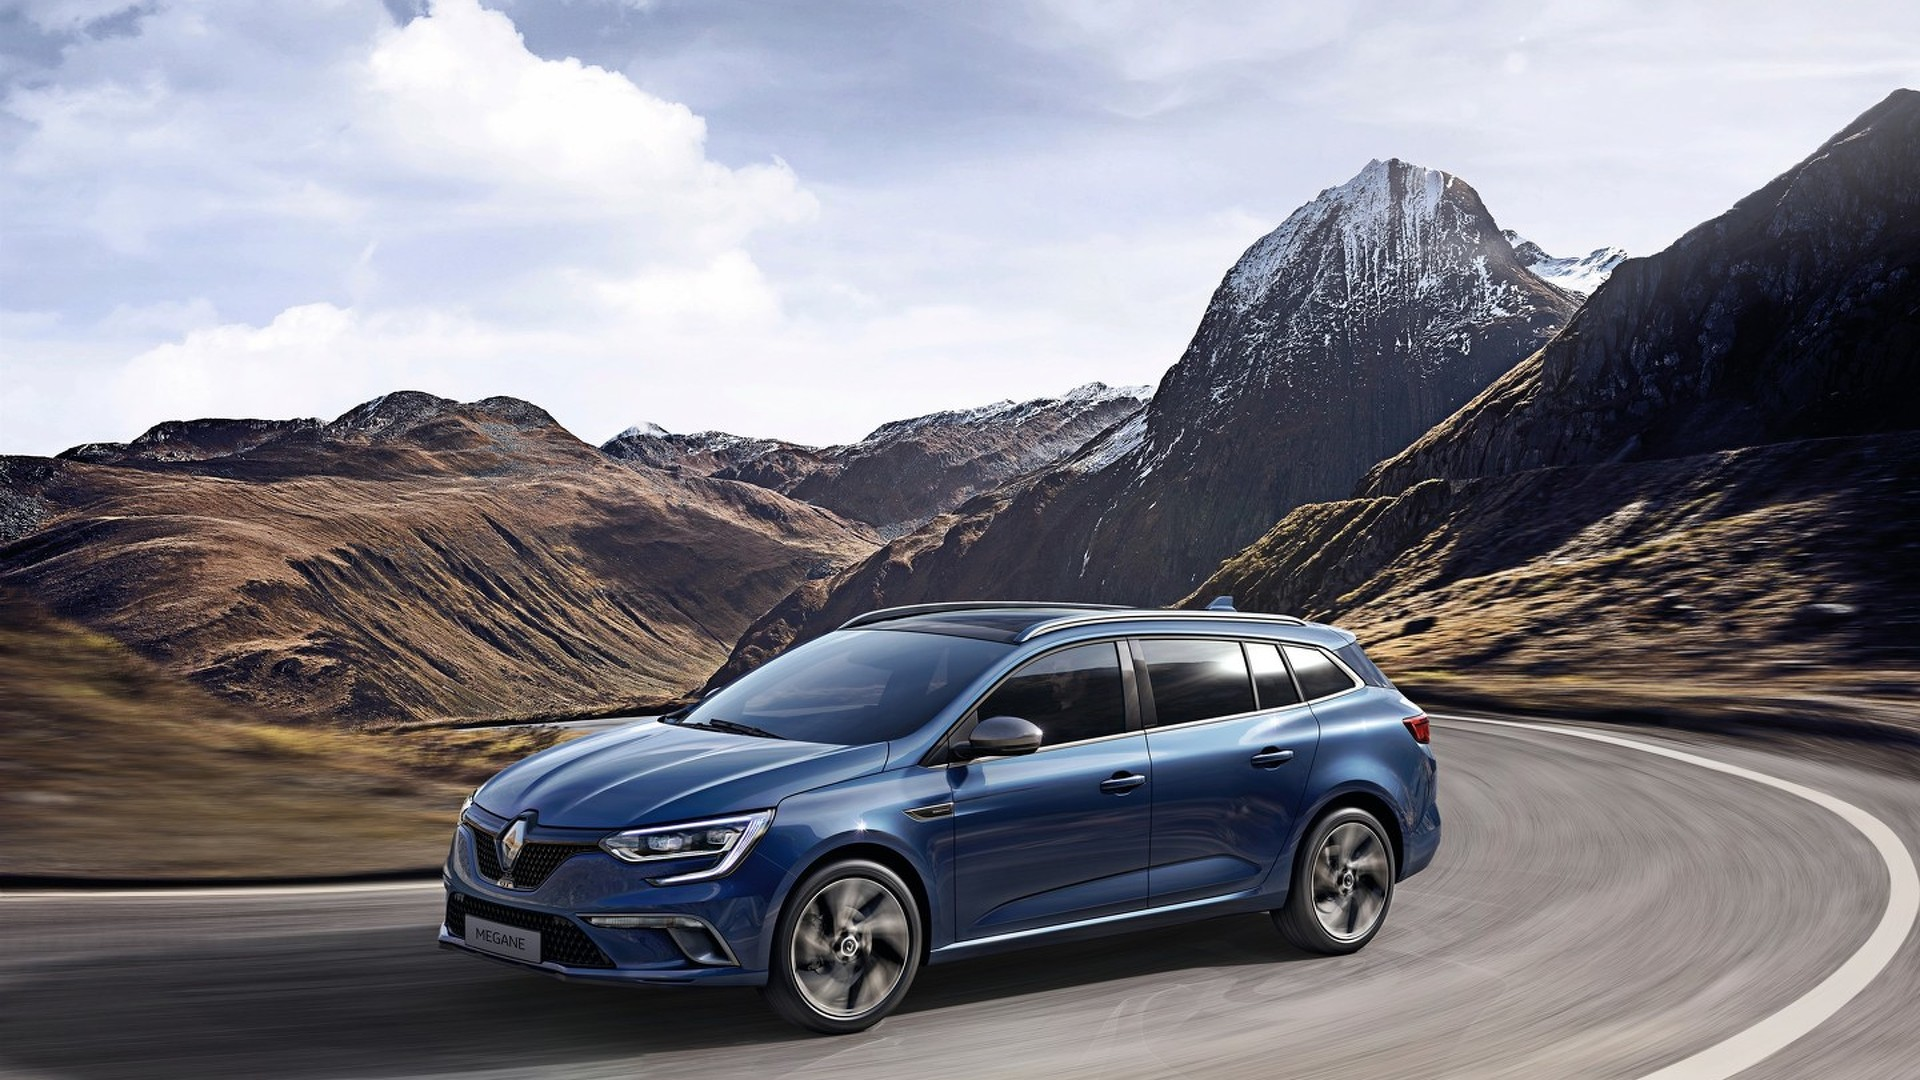 Renault Megane Estate blends practicality with sporty look